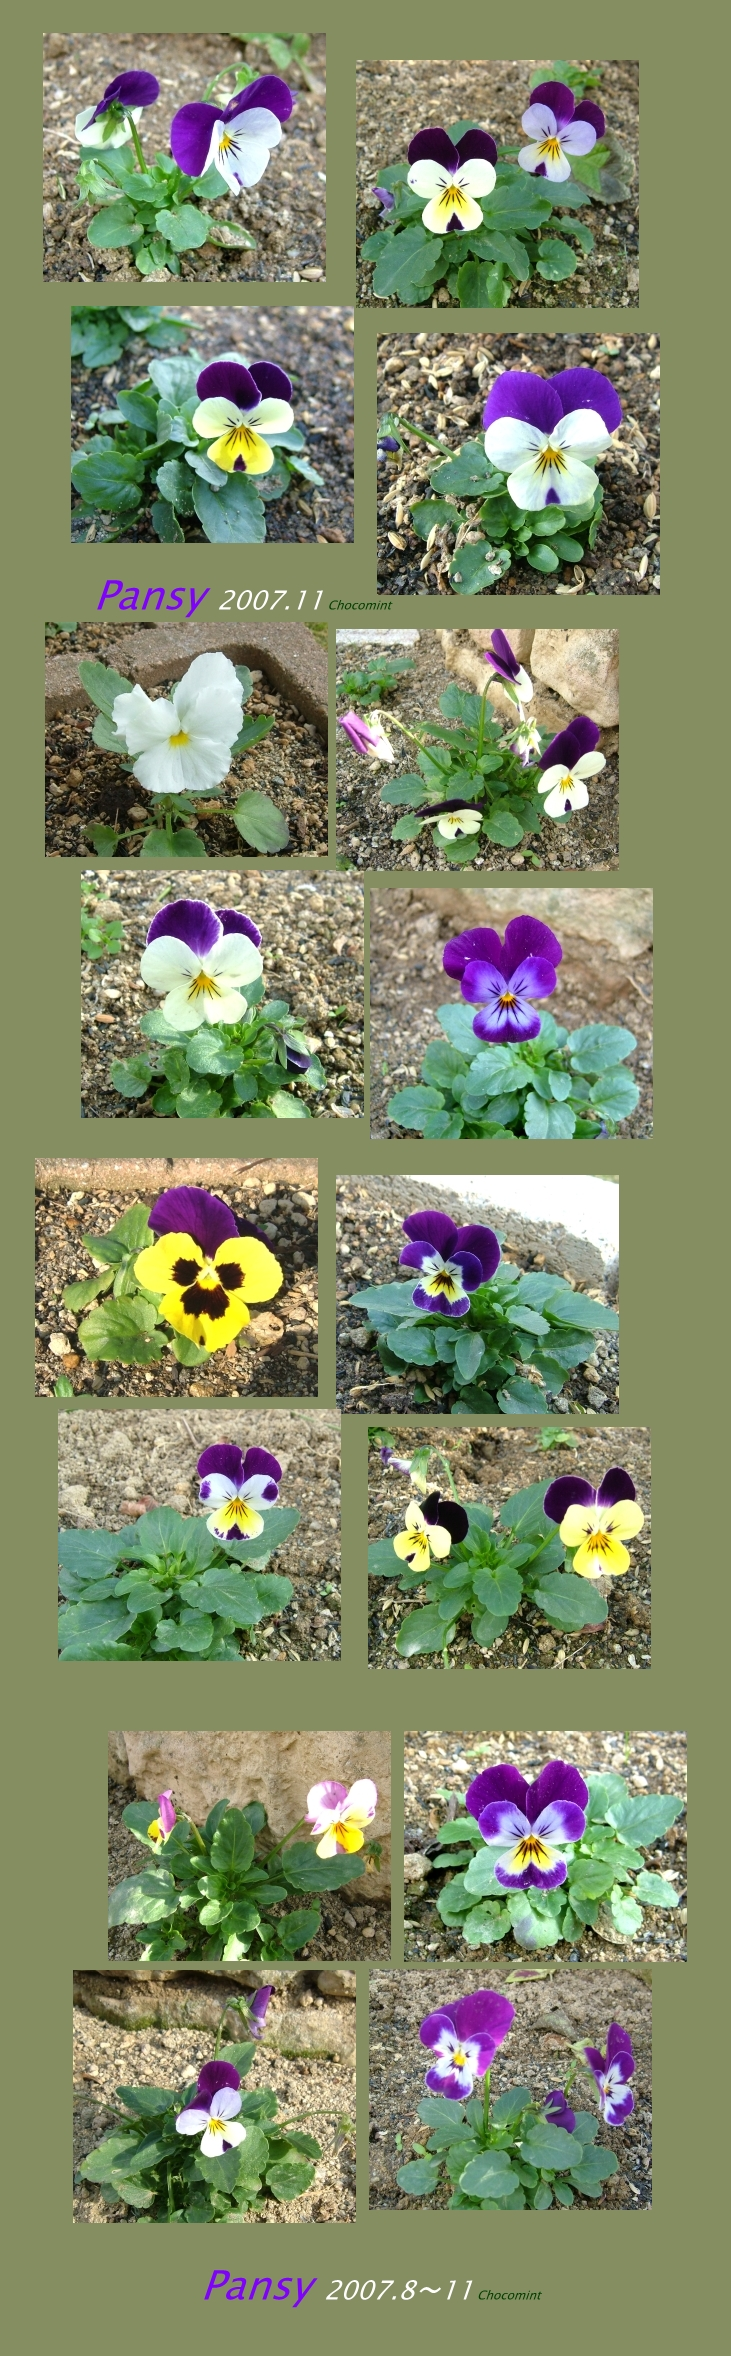 2007_1128pansy_col02